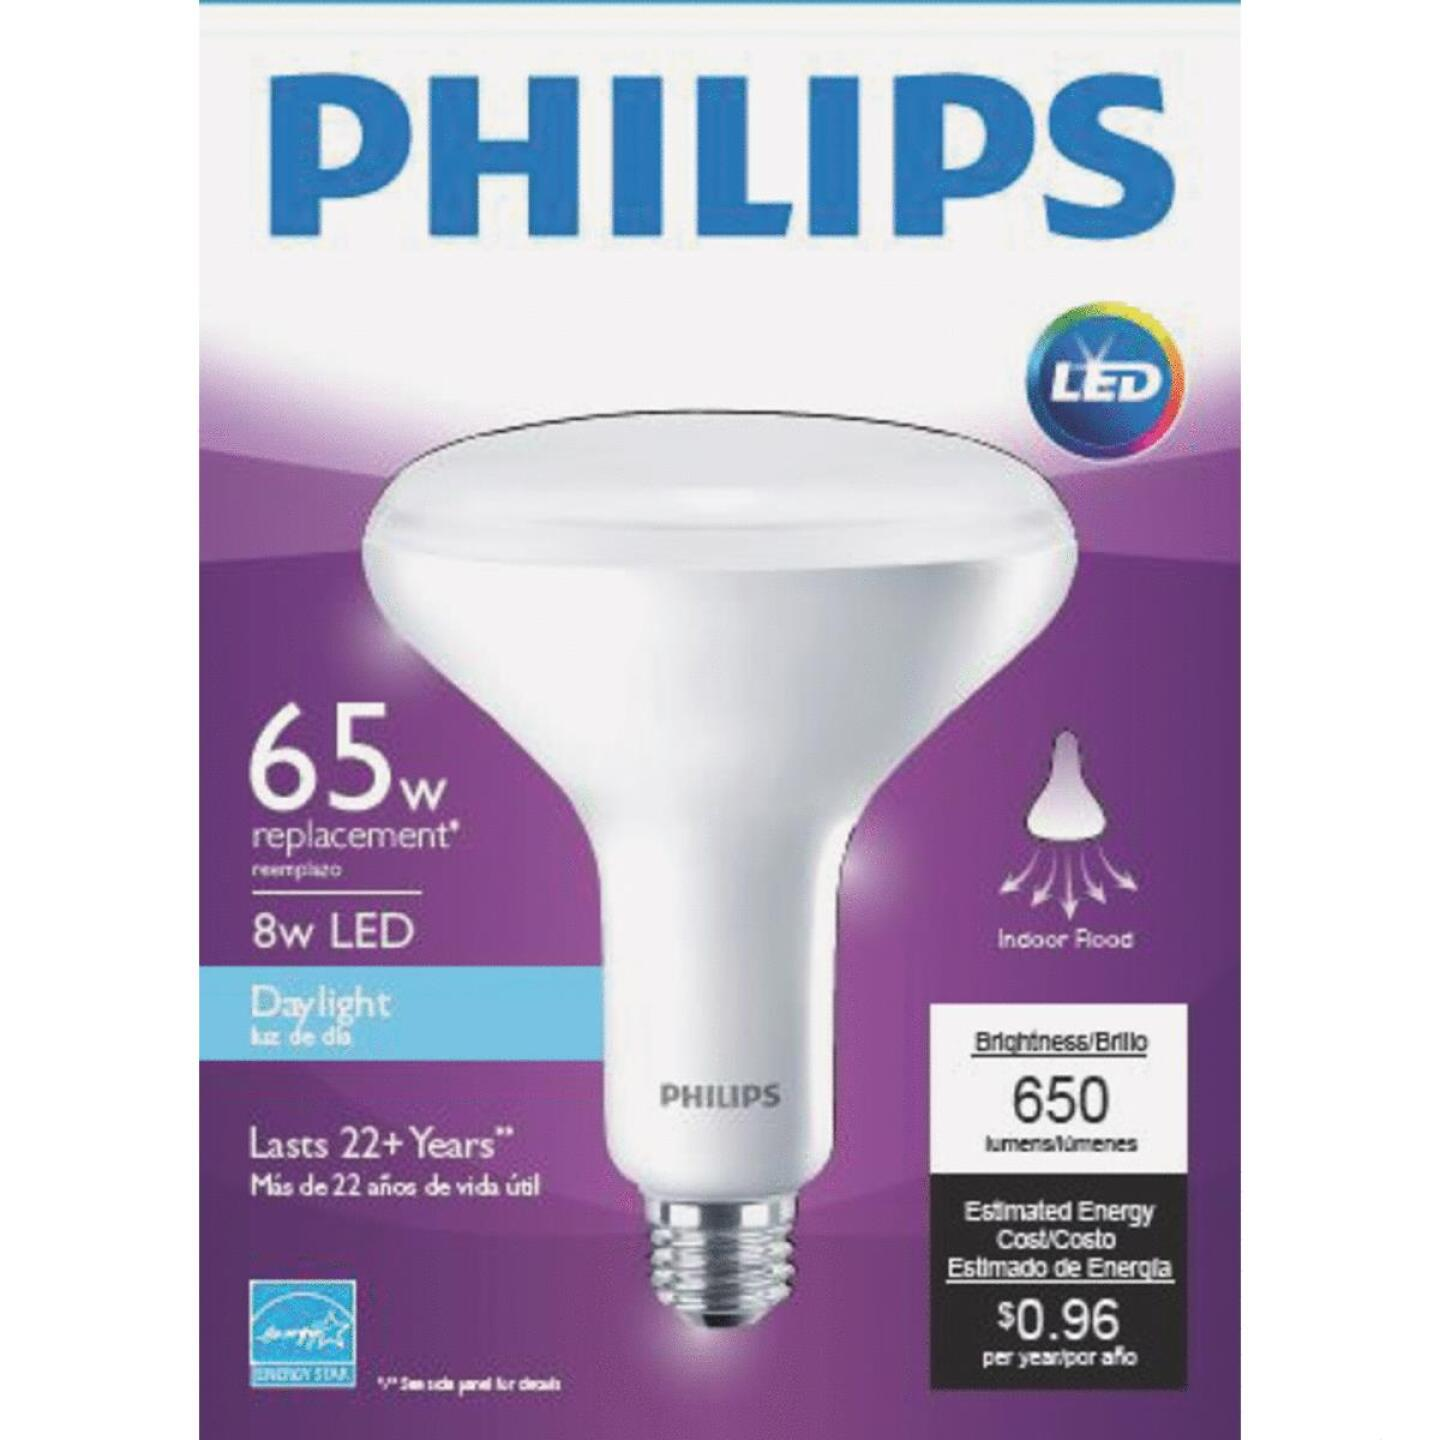 Philips 65W Equivalent Daylight BR40 Medium Dimmable LED Floodlight Light Bulb Image 2